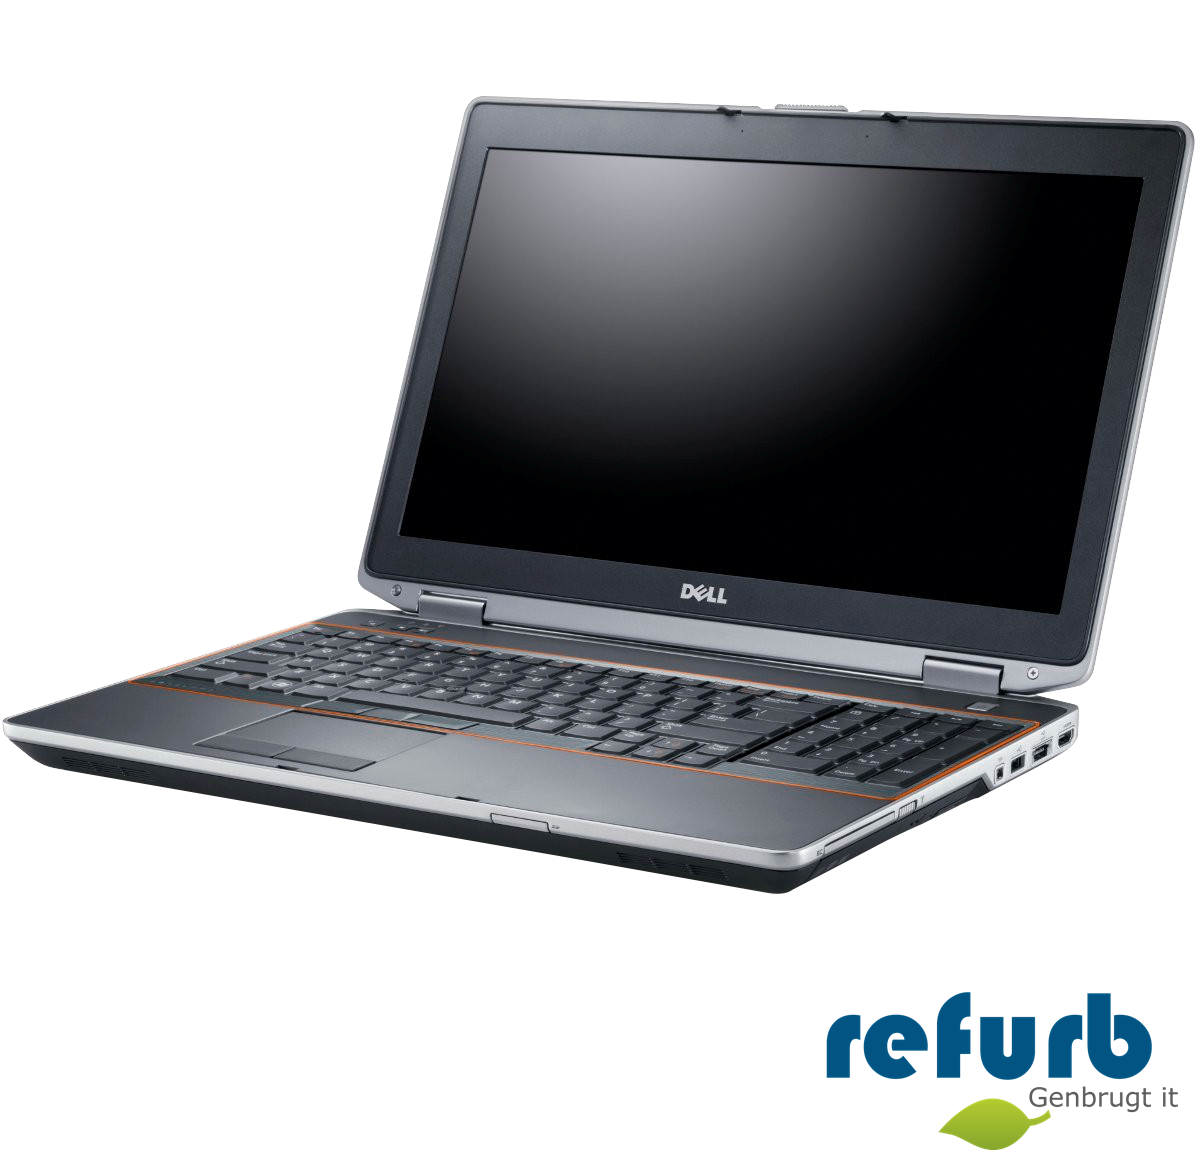 Dell Dell latitude e6520 på refurb